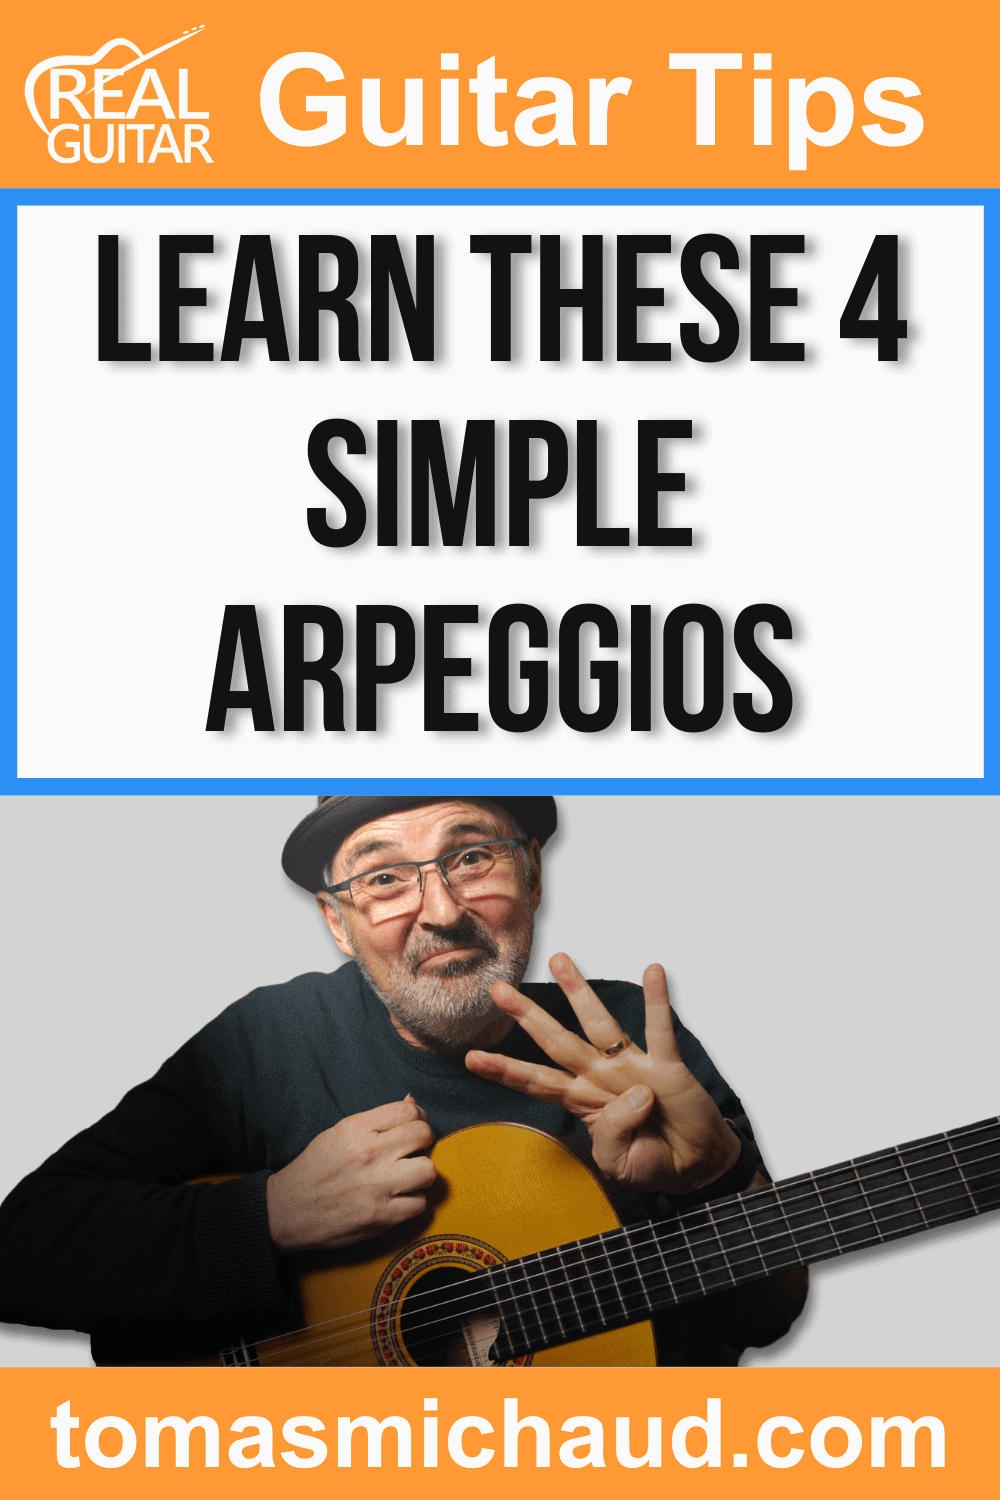 Learn These 4 Simple Arpeggios